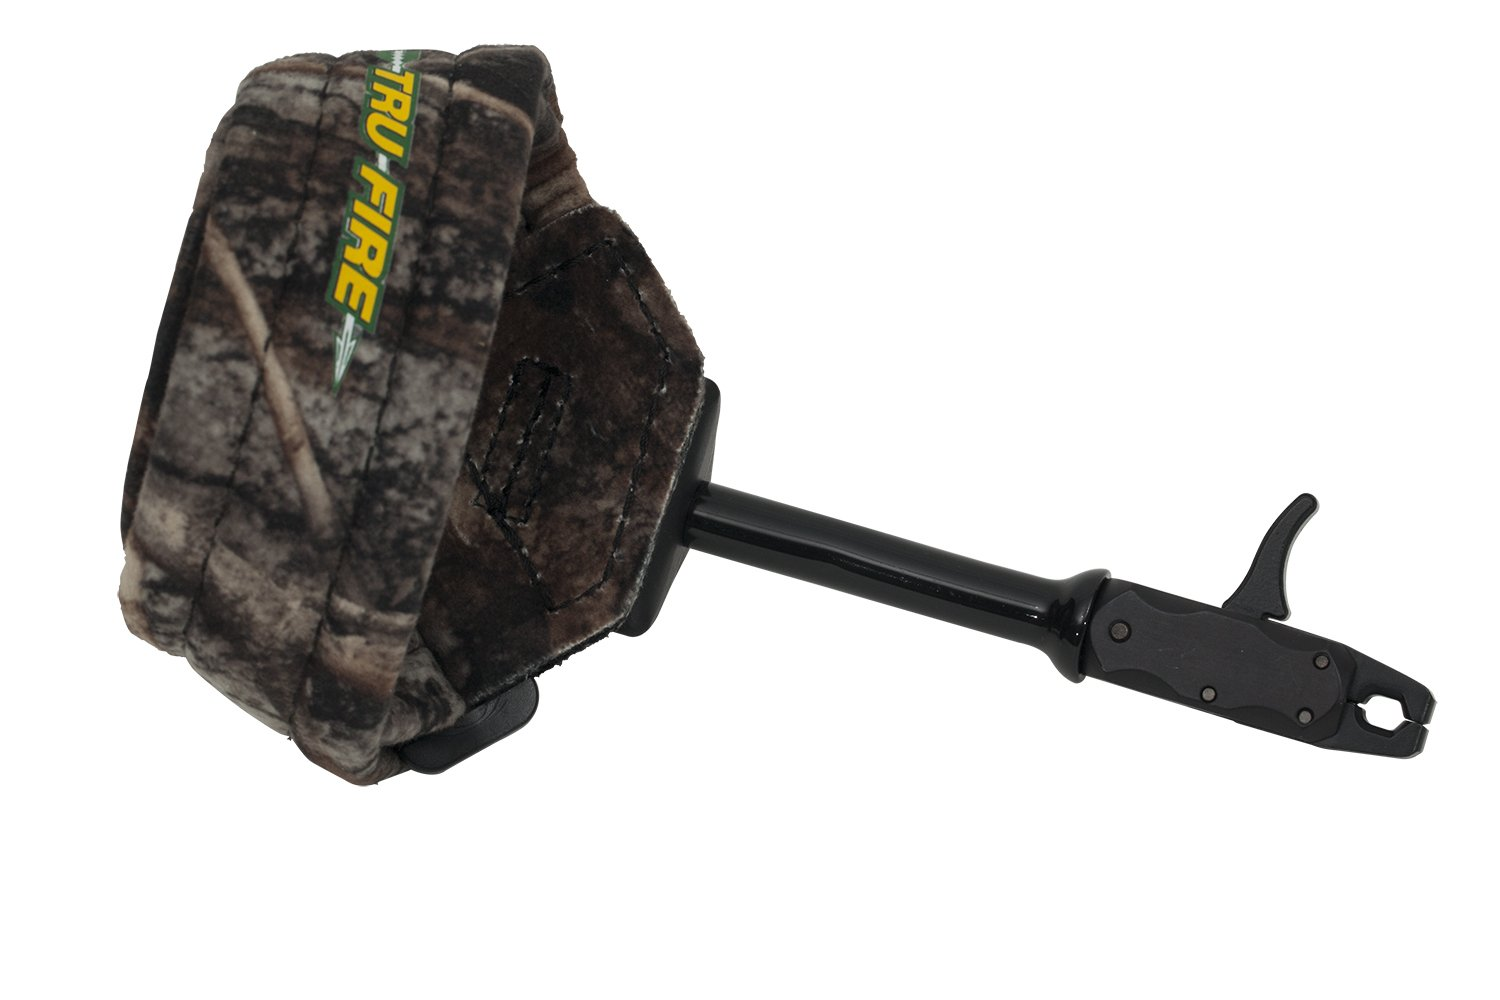 TruFire Hurricane Extreme Archery Compound Bow Release - Adjustable Wrist Strap